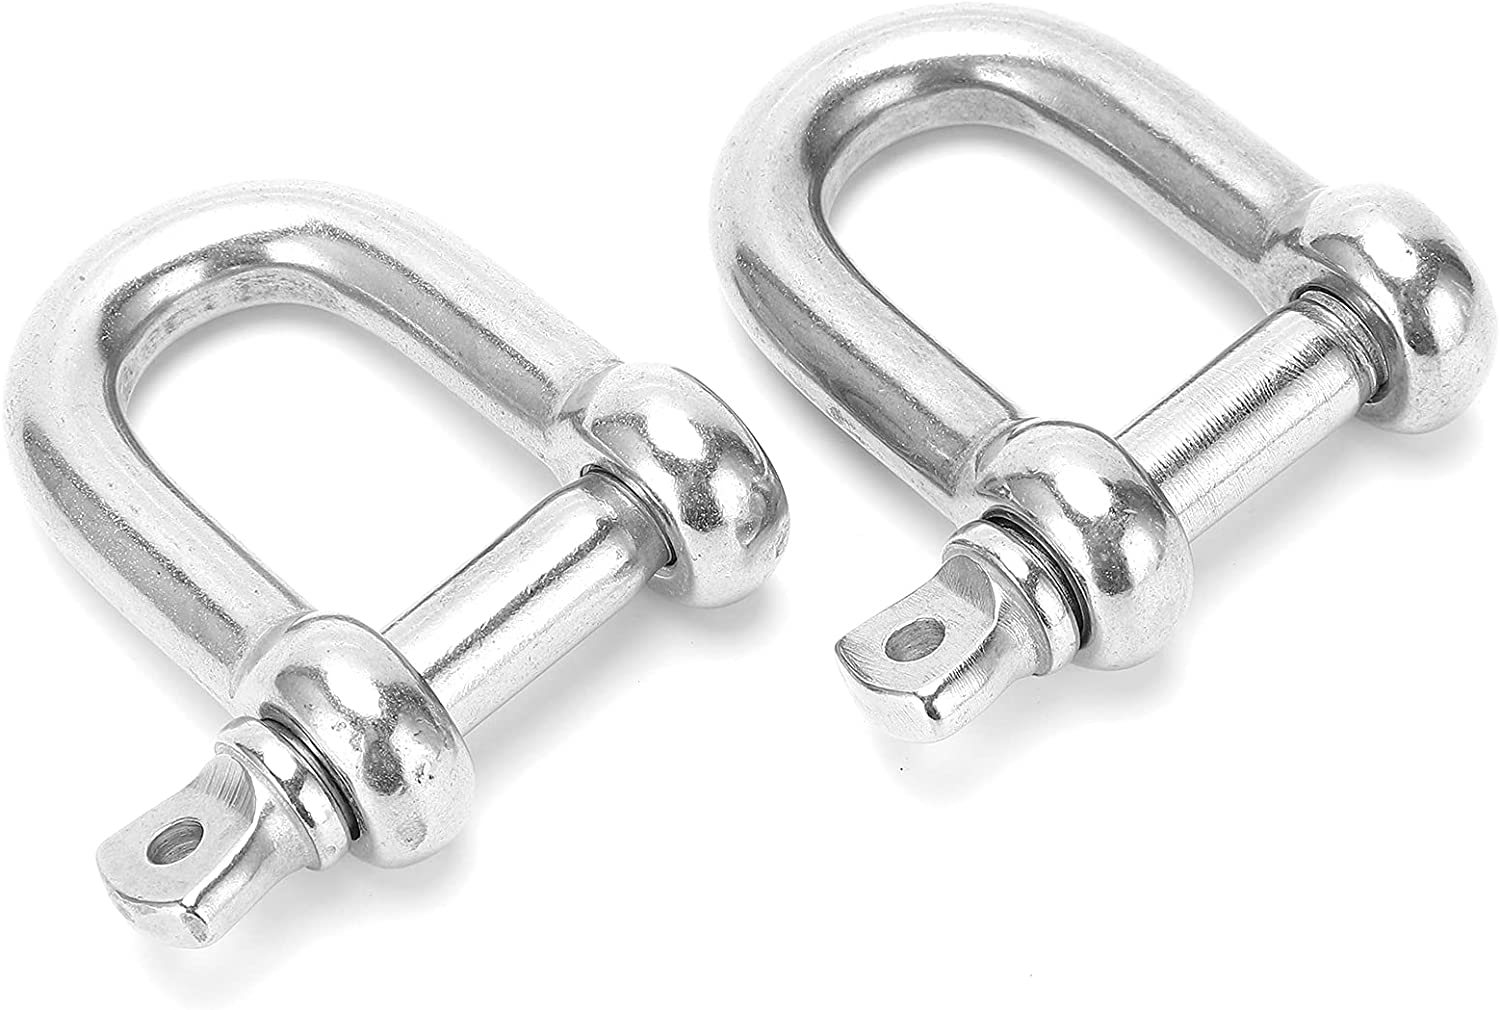 Straight Large Minneapolis Mall discharge sale D Shackle M12 D‑Shackle Stainle